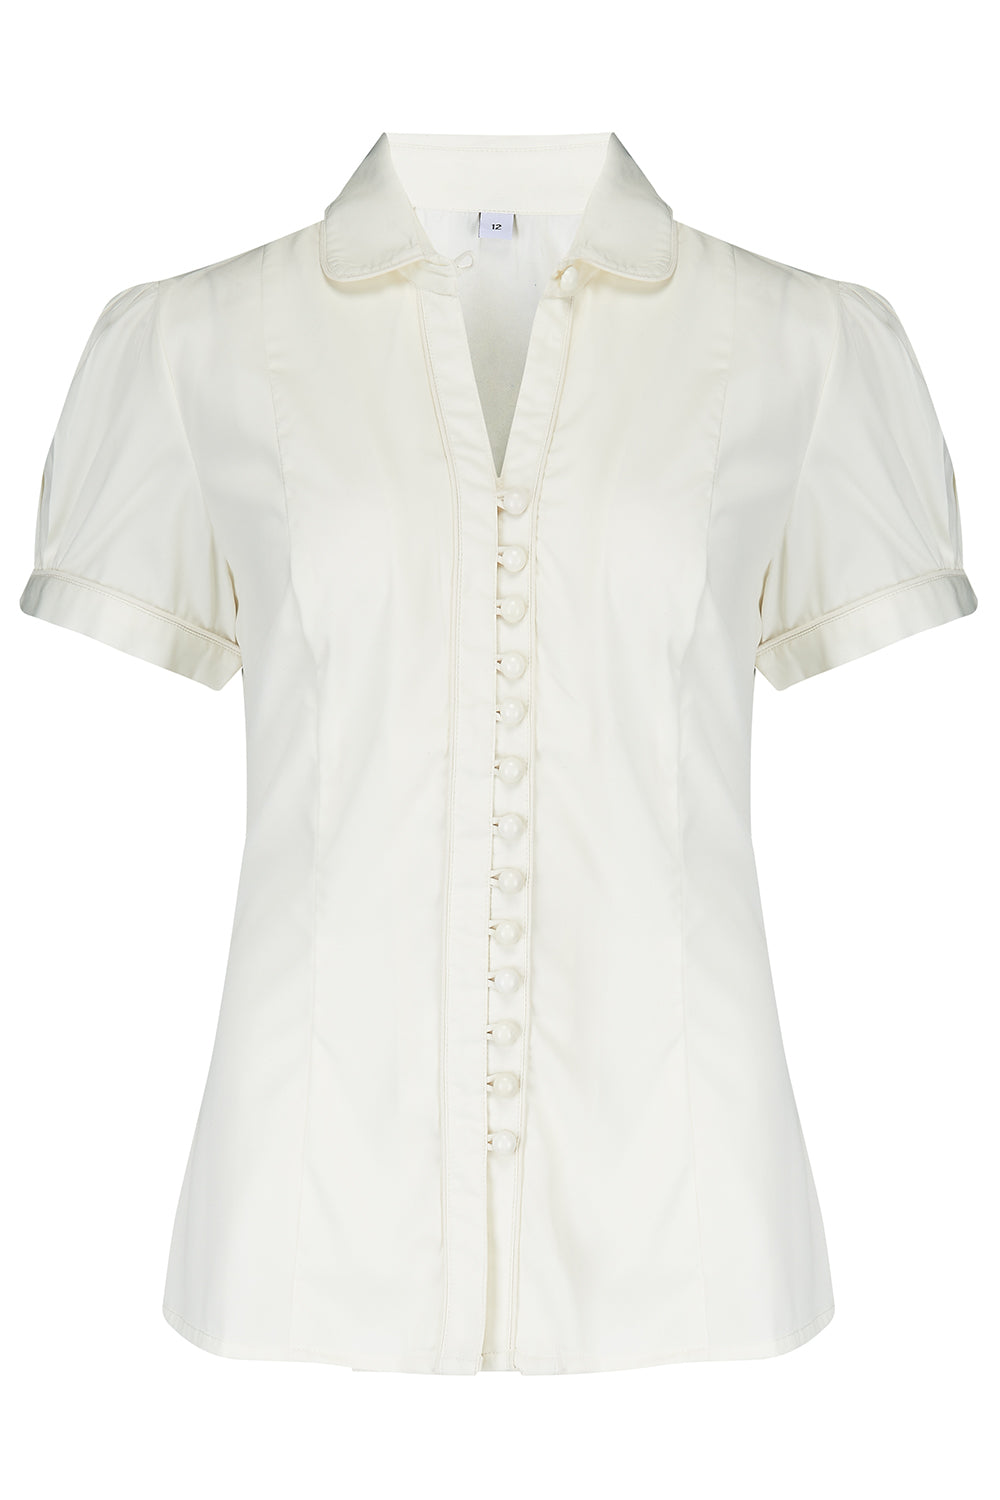 1940s Dresses and Clothing UK | 40s Shoes UK Pre-Order The Margot Blouse in Antique White True  Classic Easy To Wear Vintage Style £29.00 AT vintagedancer.com